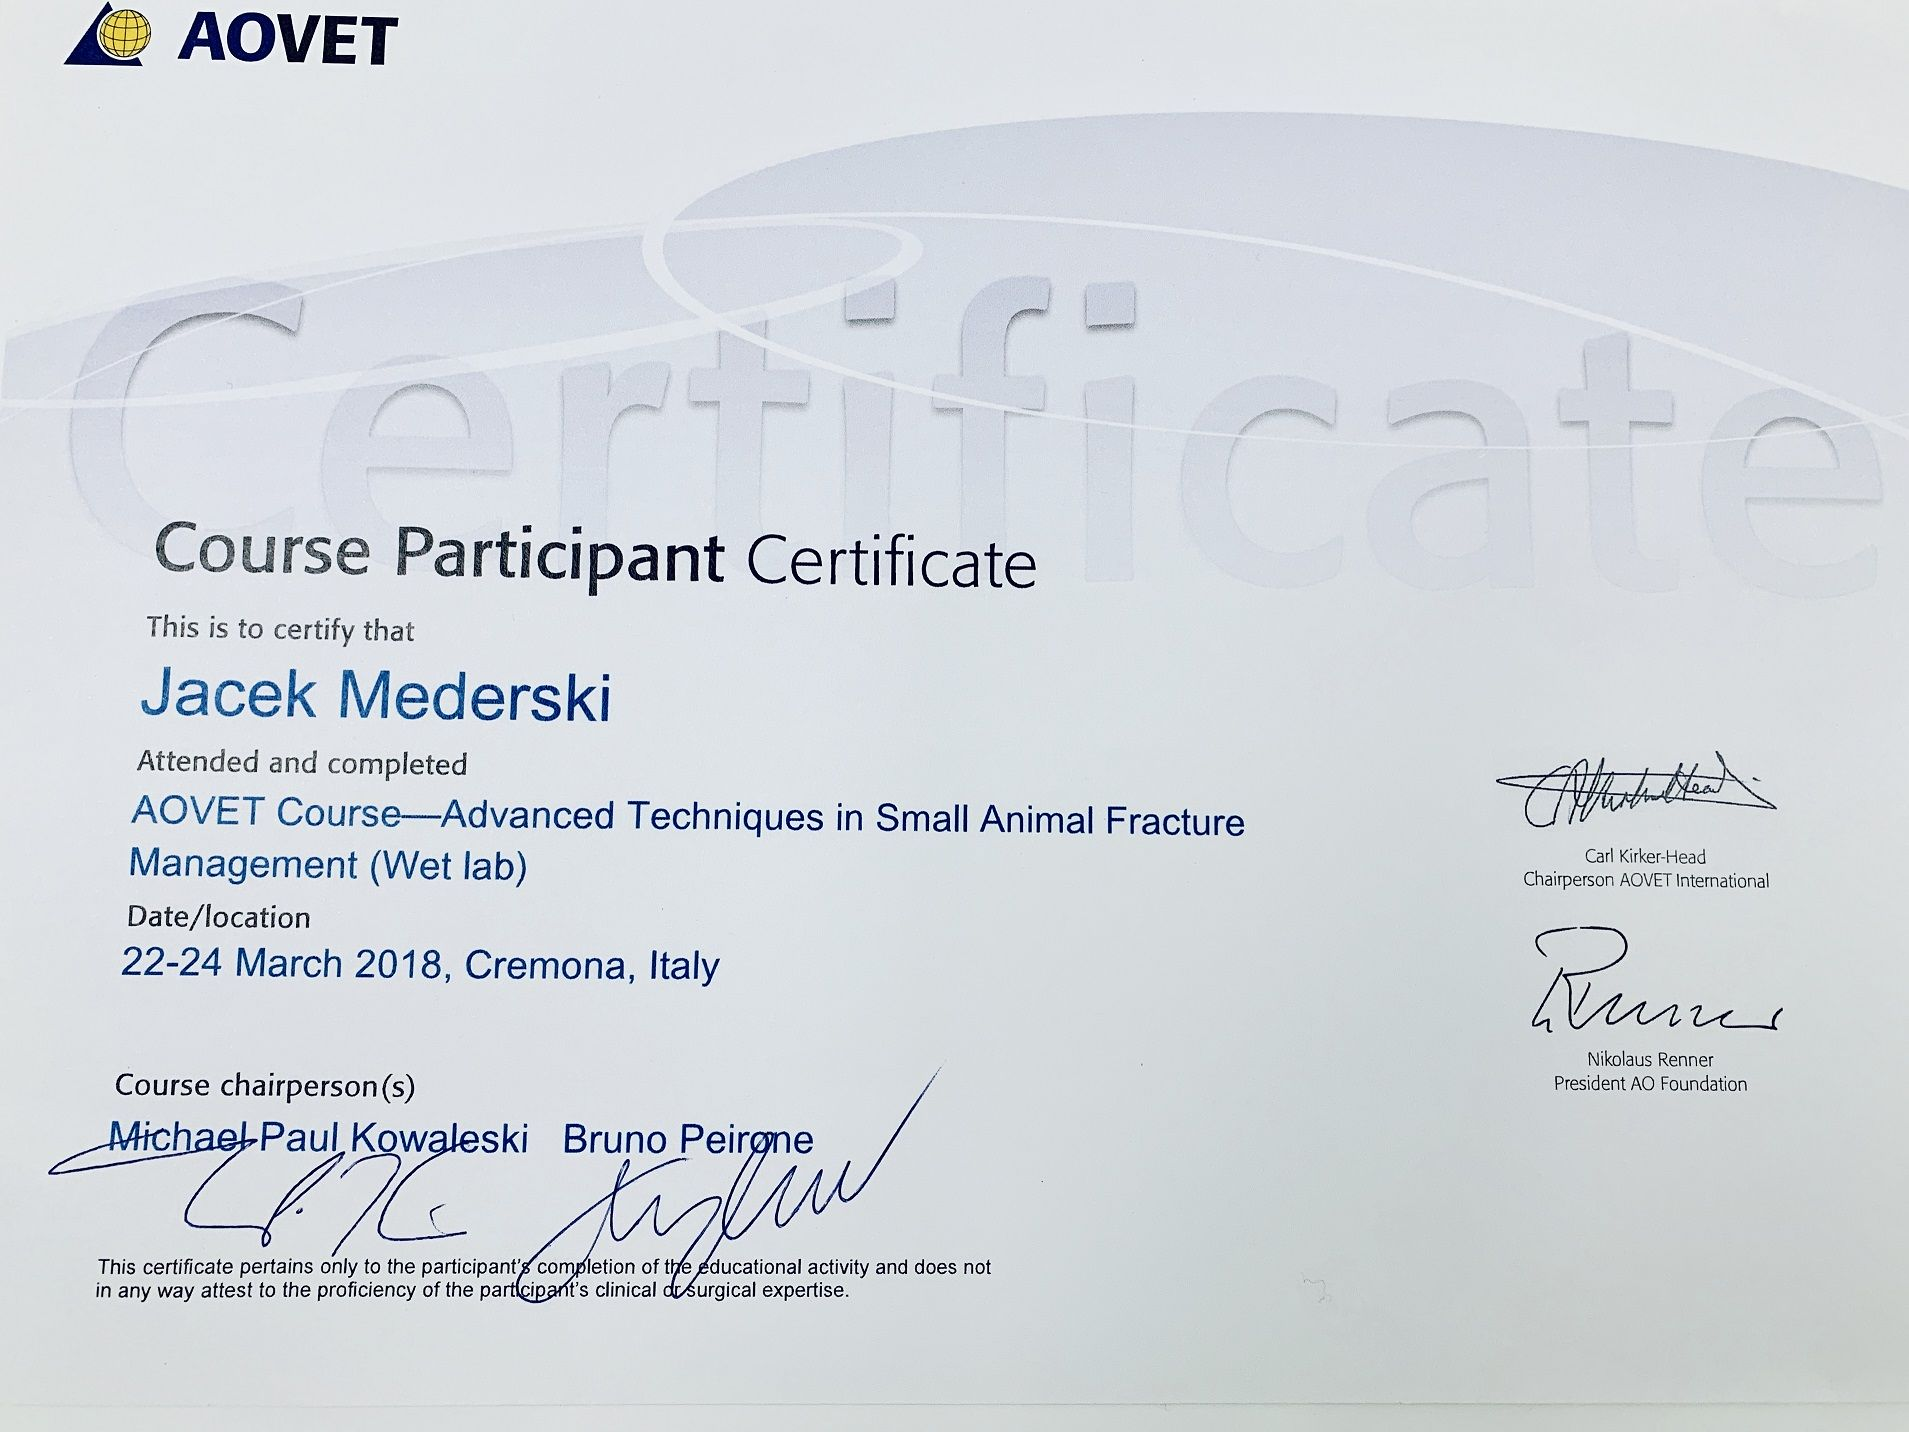 AOVET Course-Advanced Techinques in Small Animal Fracture Management (Wet lab) - Cremona